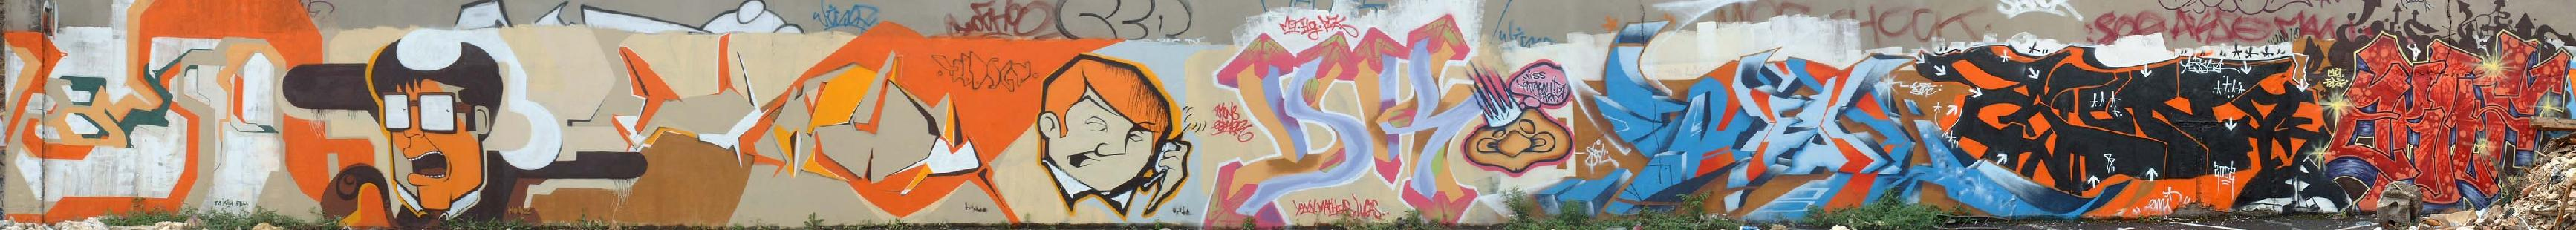 ols-edf_graffiti_2002_seine-st-denis-djuk-pck-turbo-design-sunset-actif_01.jpg